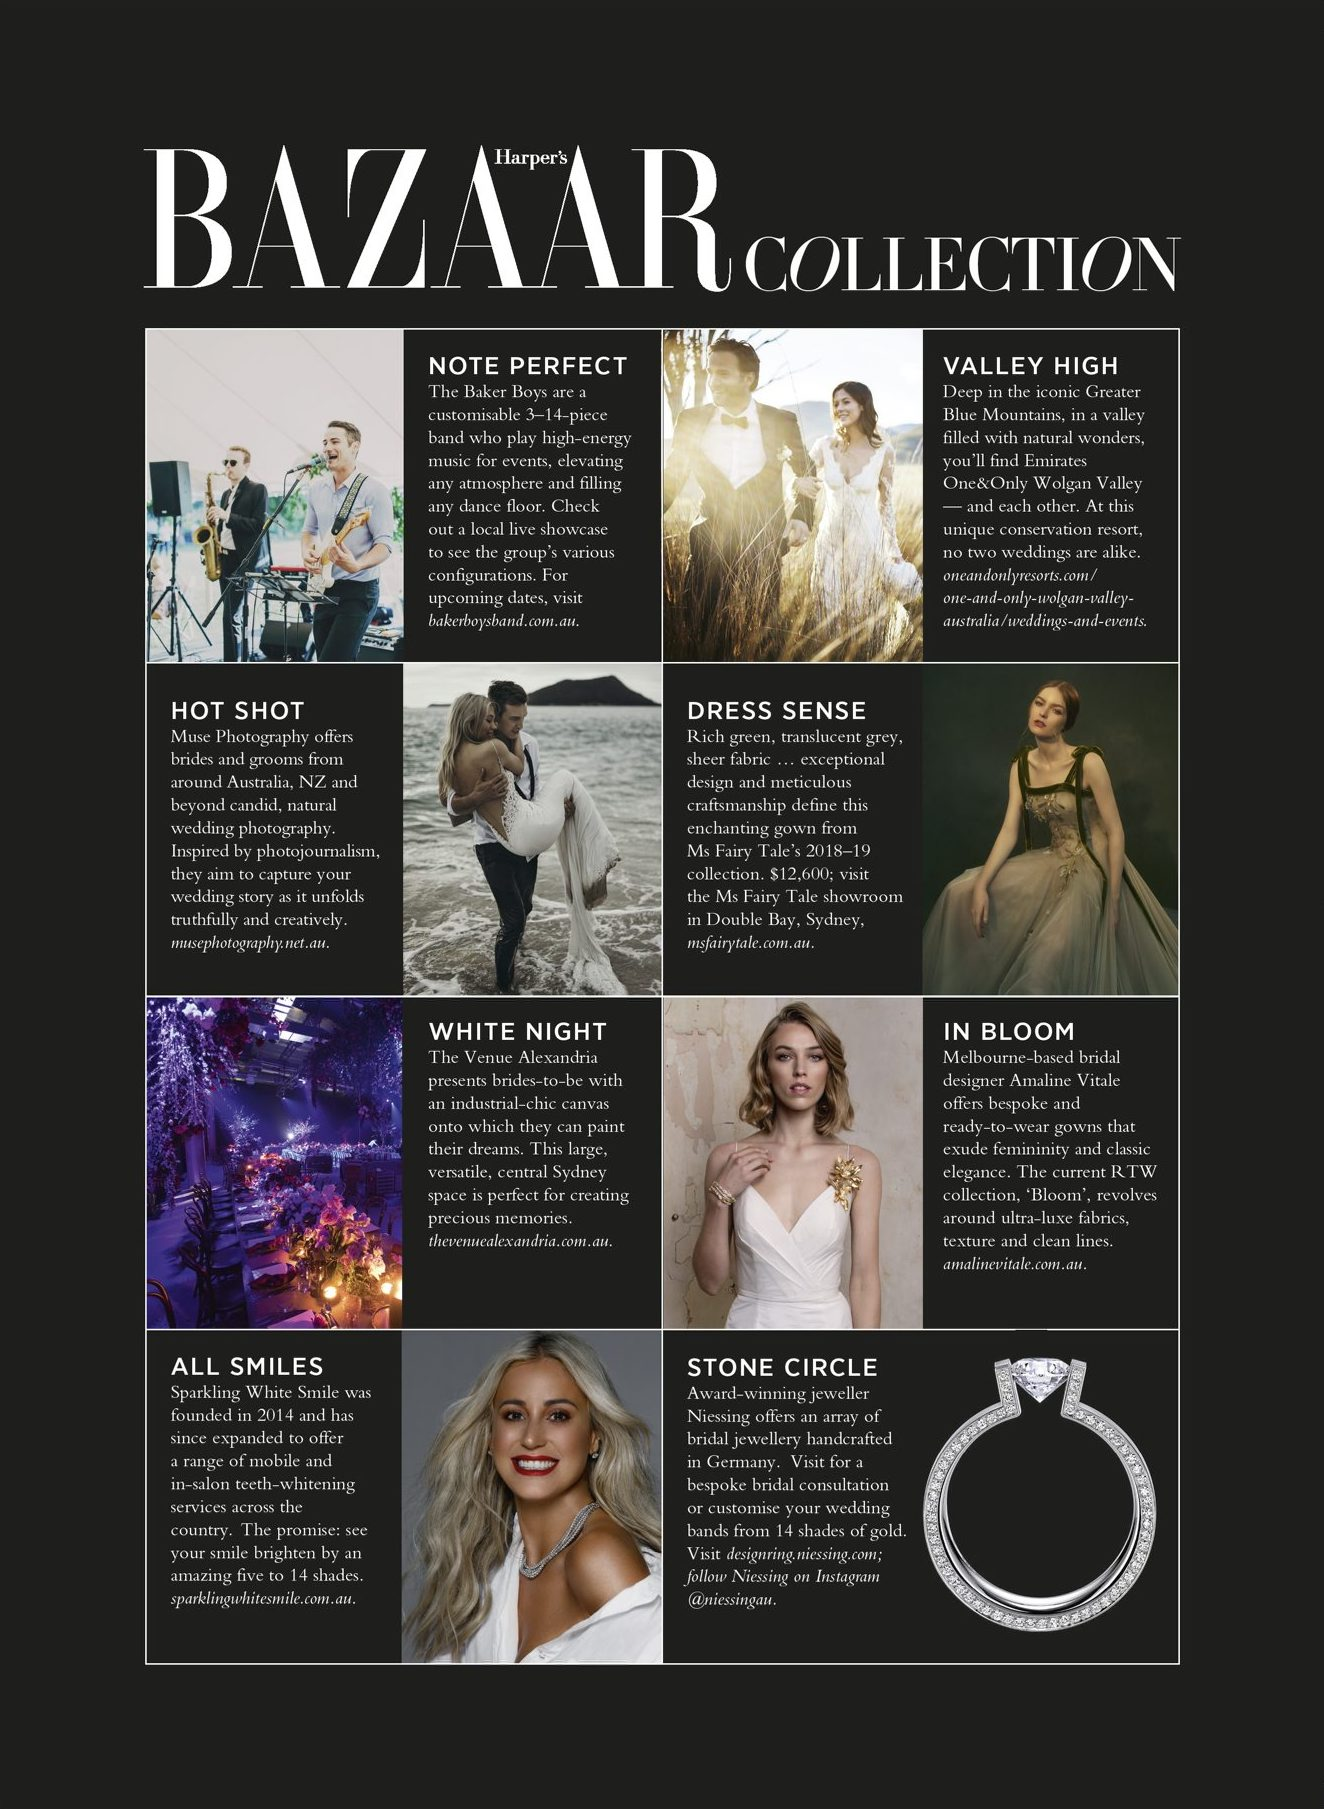 BAZAAR Bridal Mention.jpg